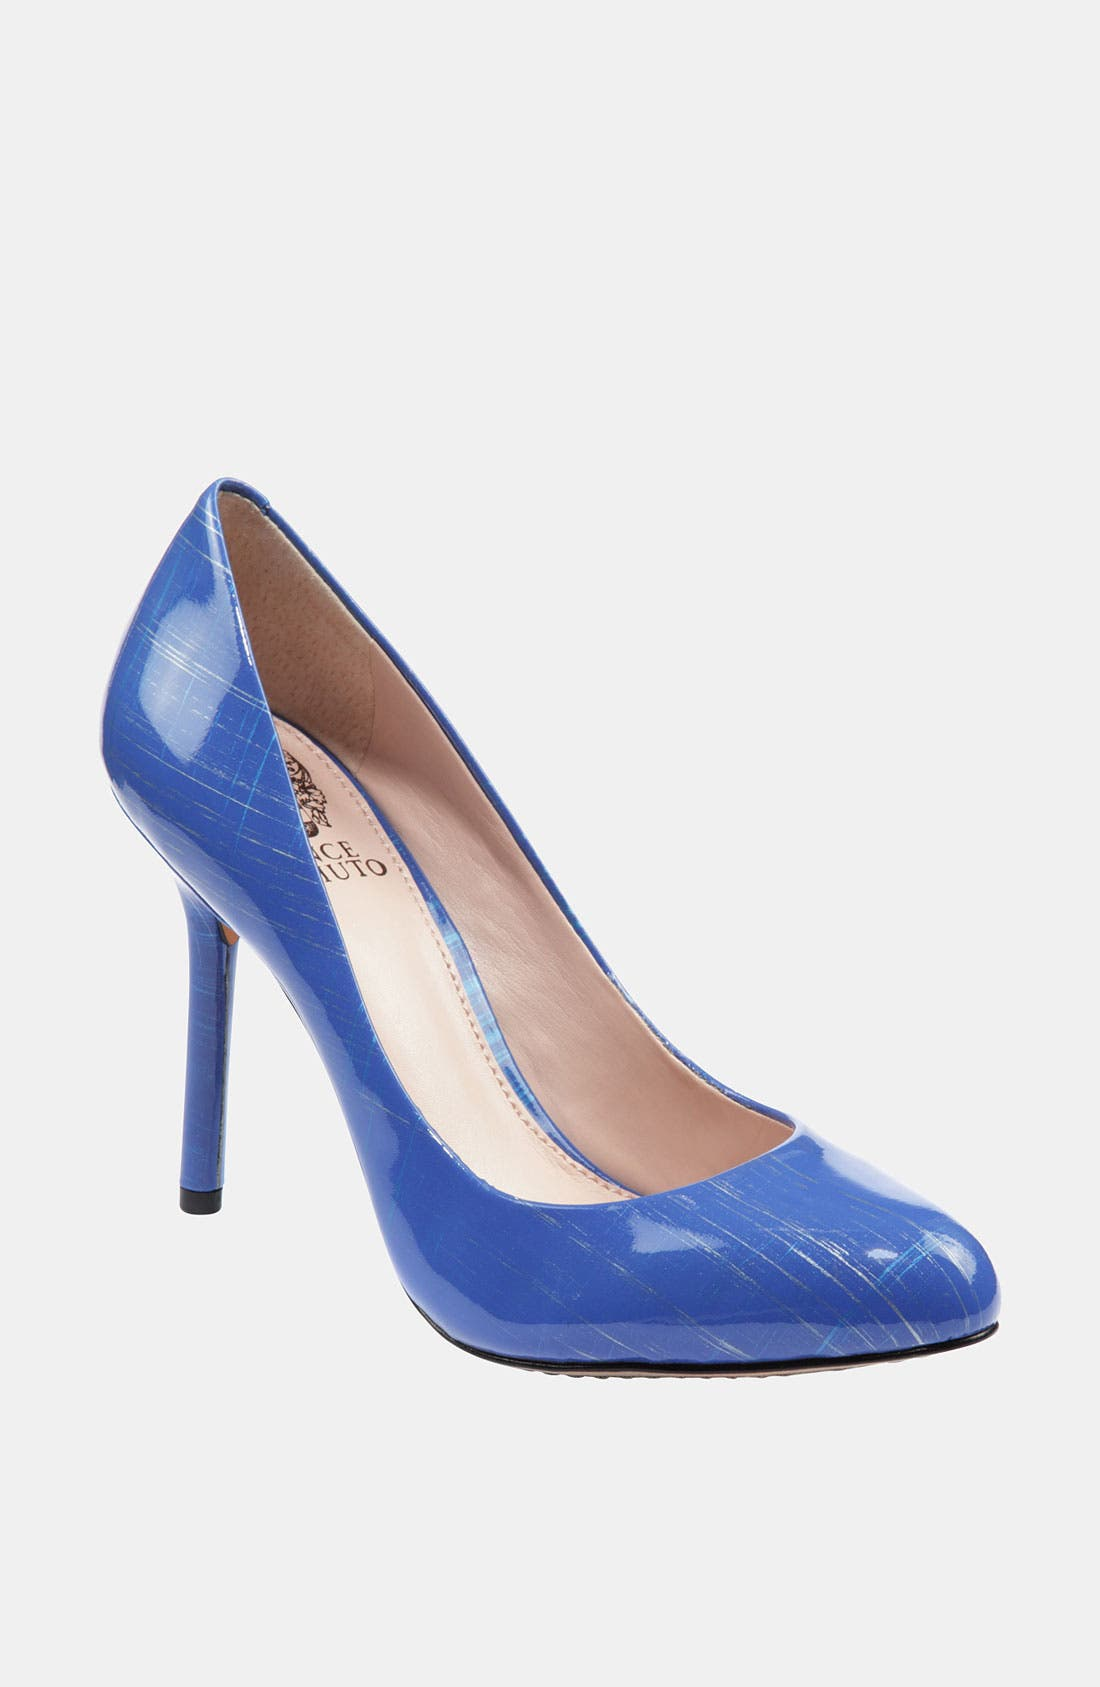 Alternate Image 1 Selected - Vince Camuto 'Caelyn' Pump (Online Only)